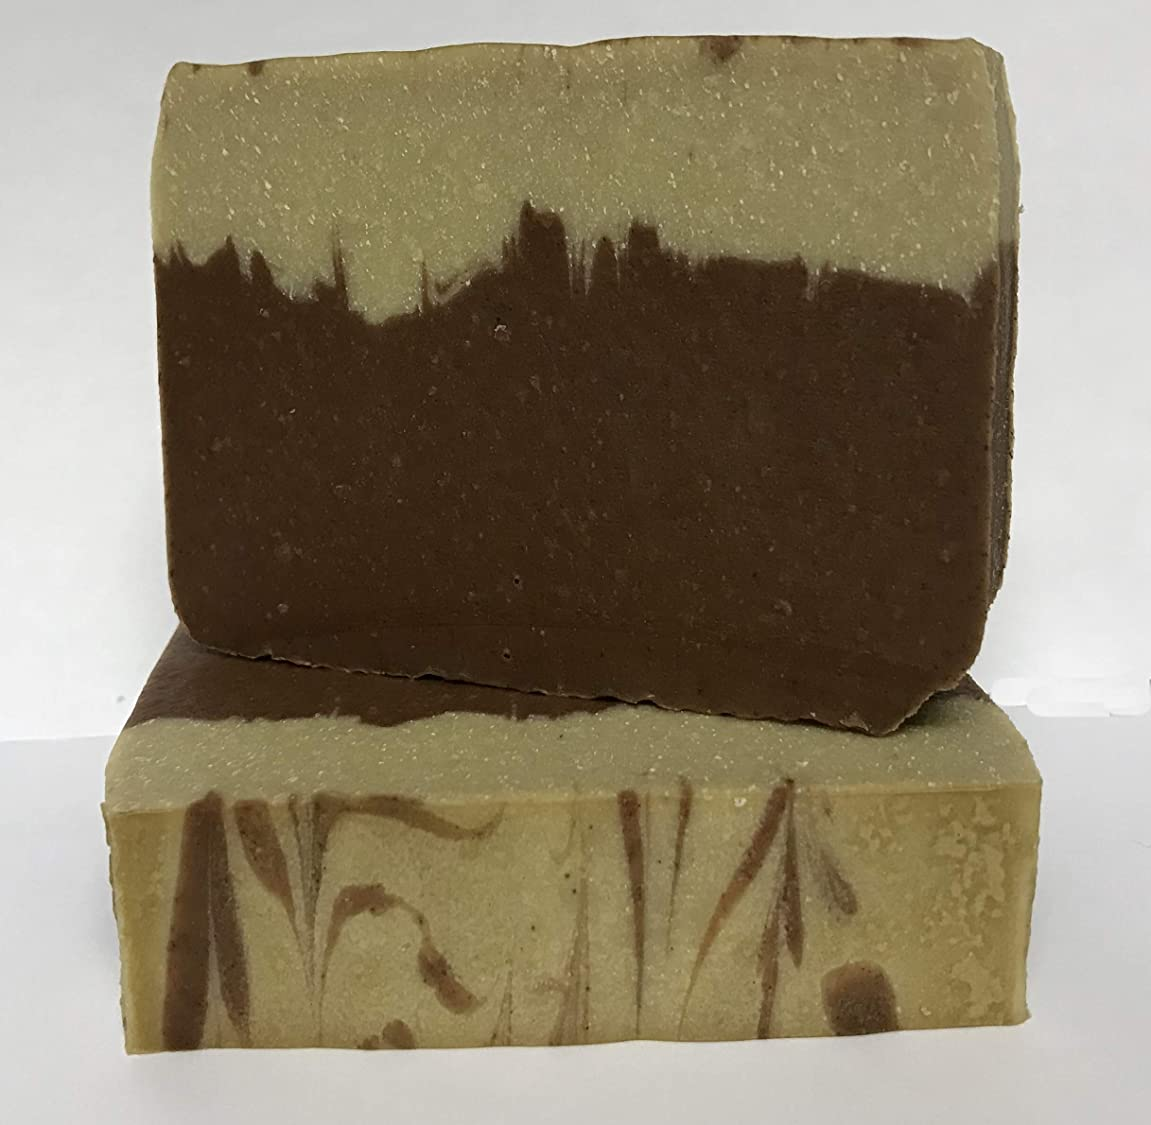 ORGANIC VANILLA OATMEAL HANDMADE SOAP-ALL NATURAL & VEGAN aq579411772678